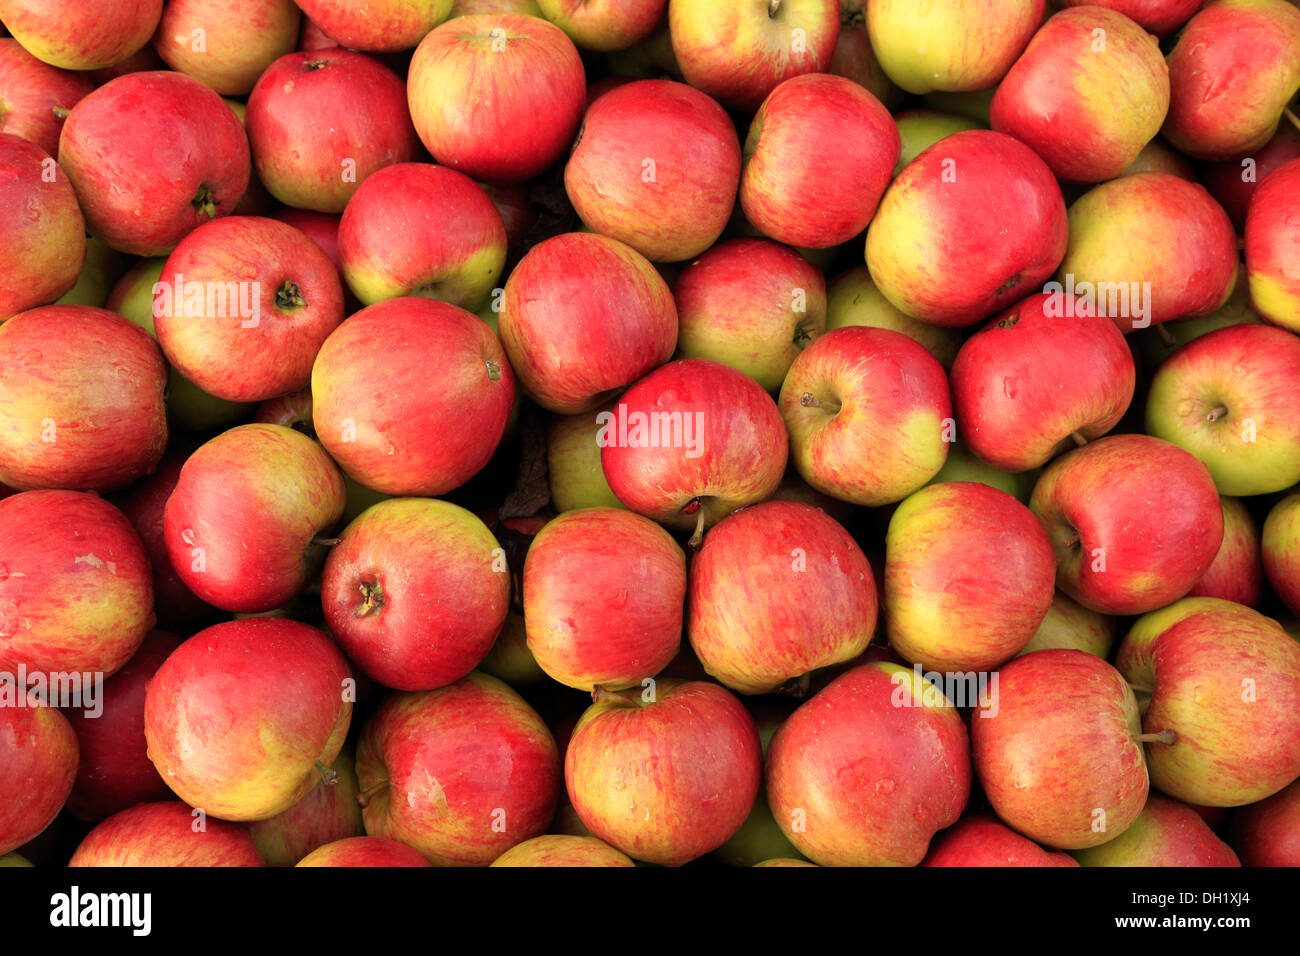 Apple 'Laxton's Fortune', farm shop display, apples UK Stock Photo